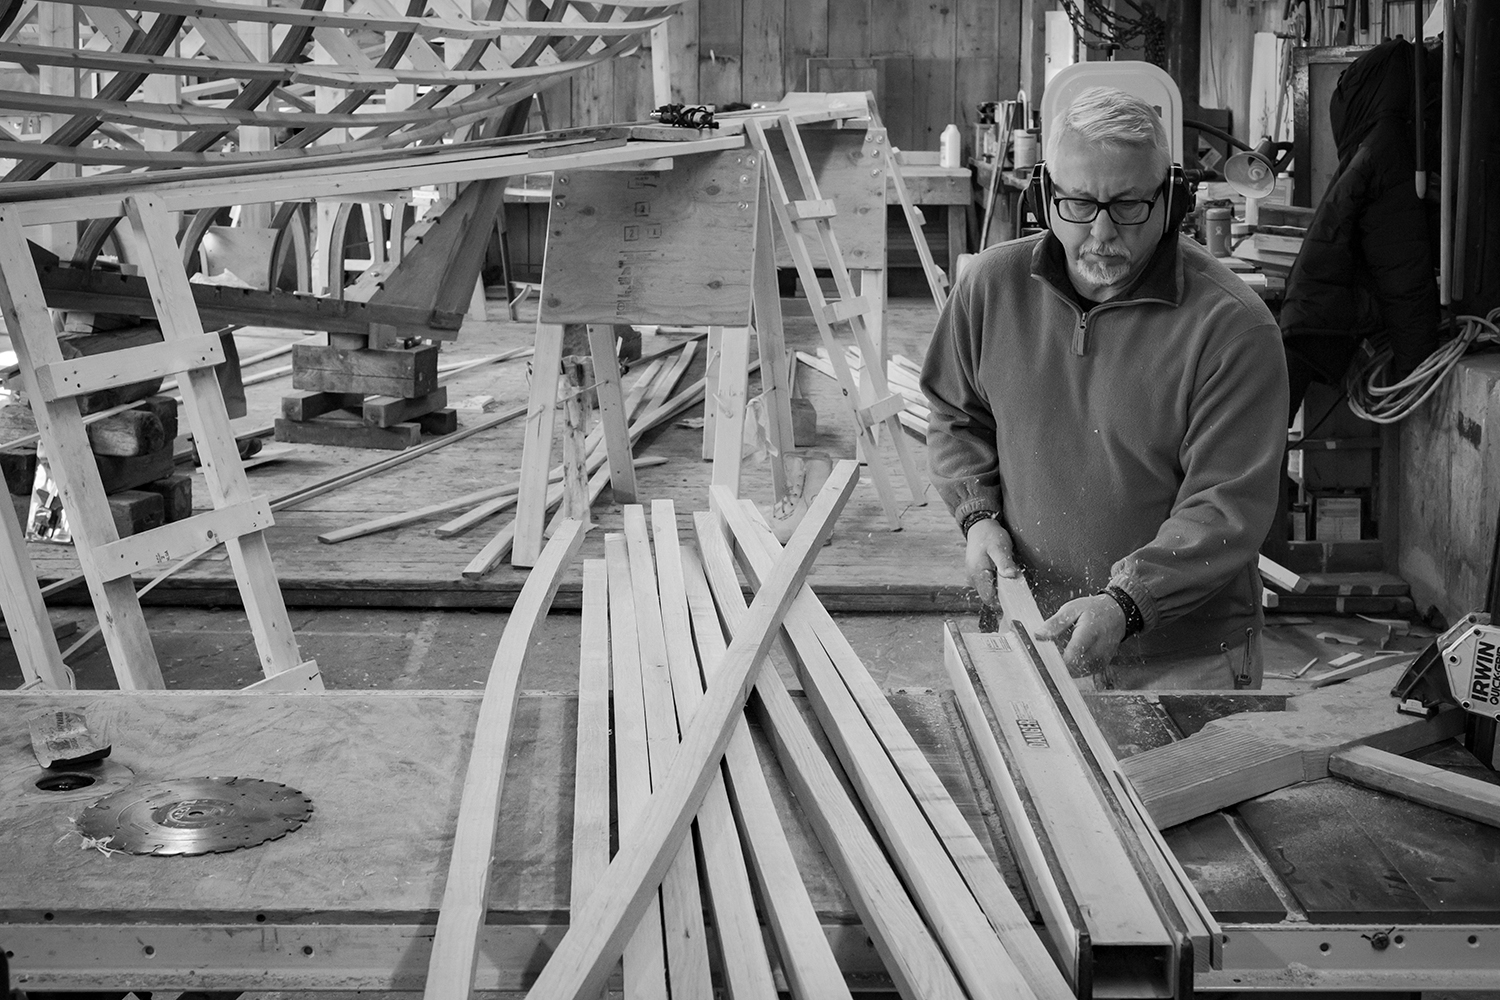 putting the stern, keel, sternpost together. Week 19